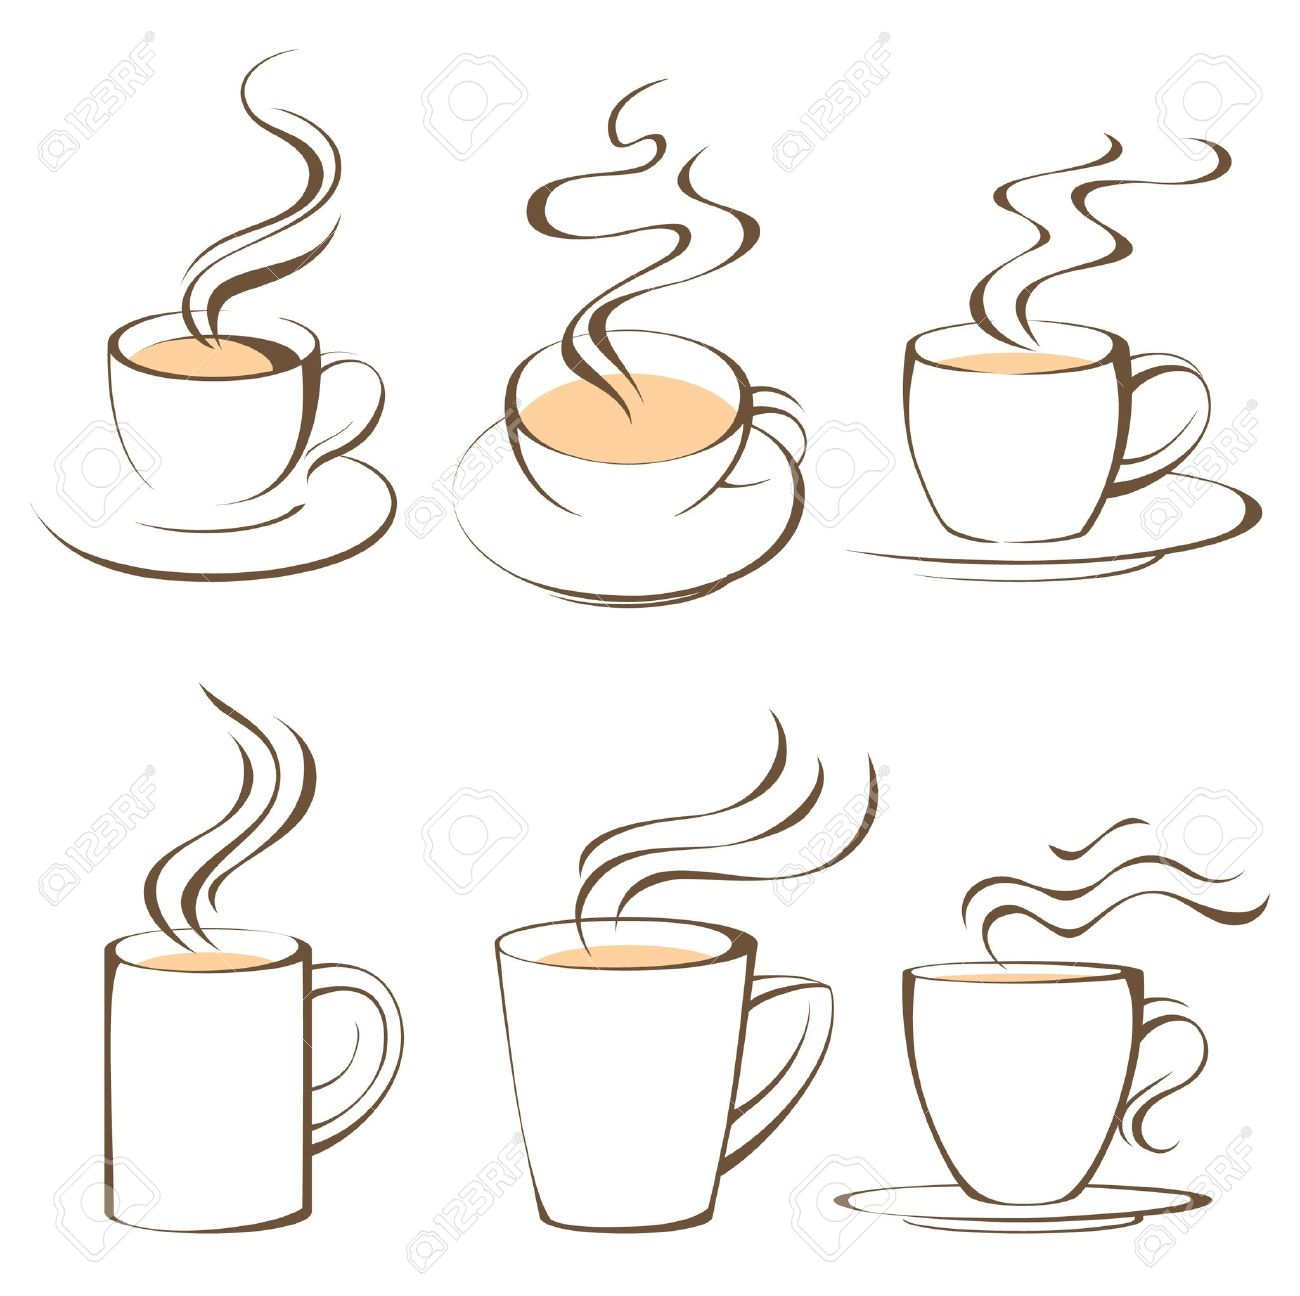 Stylized Coffee And Tea Cups Royalty Free Cliparts, Vectors, And ...